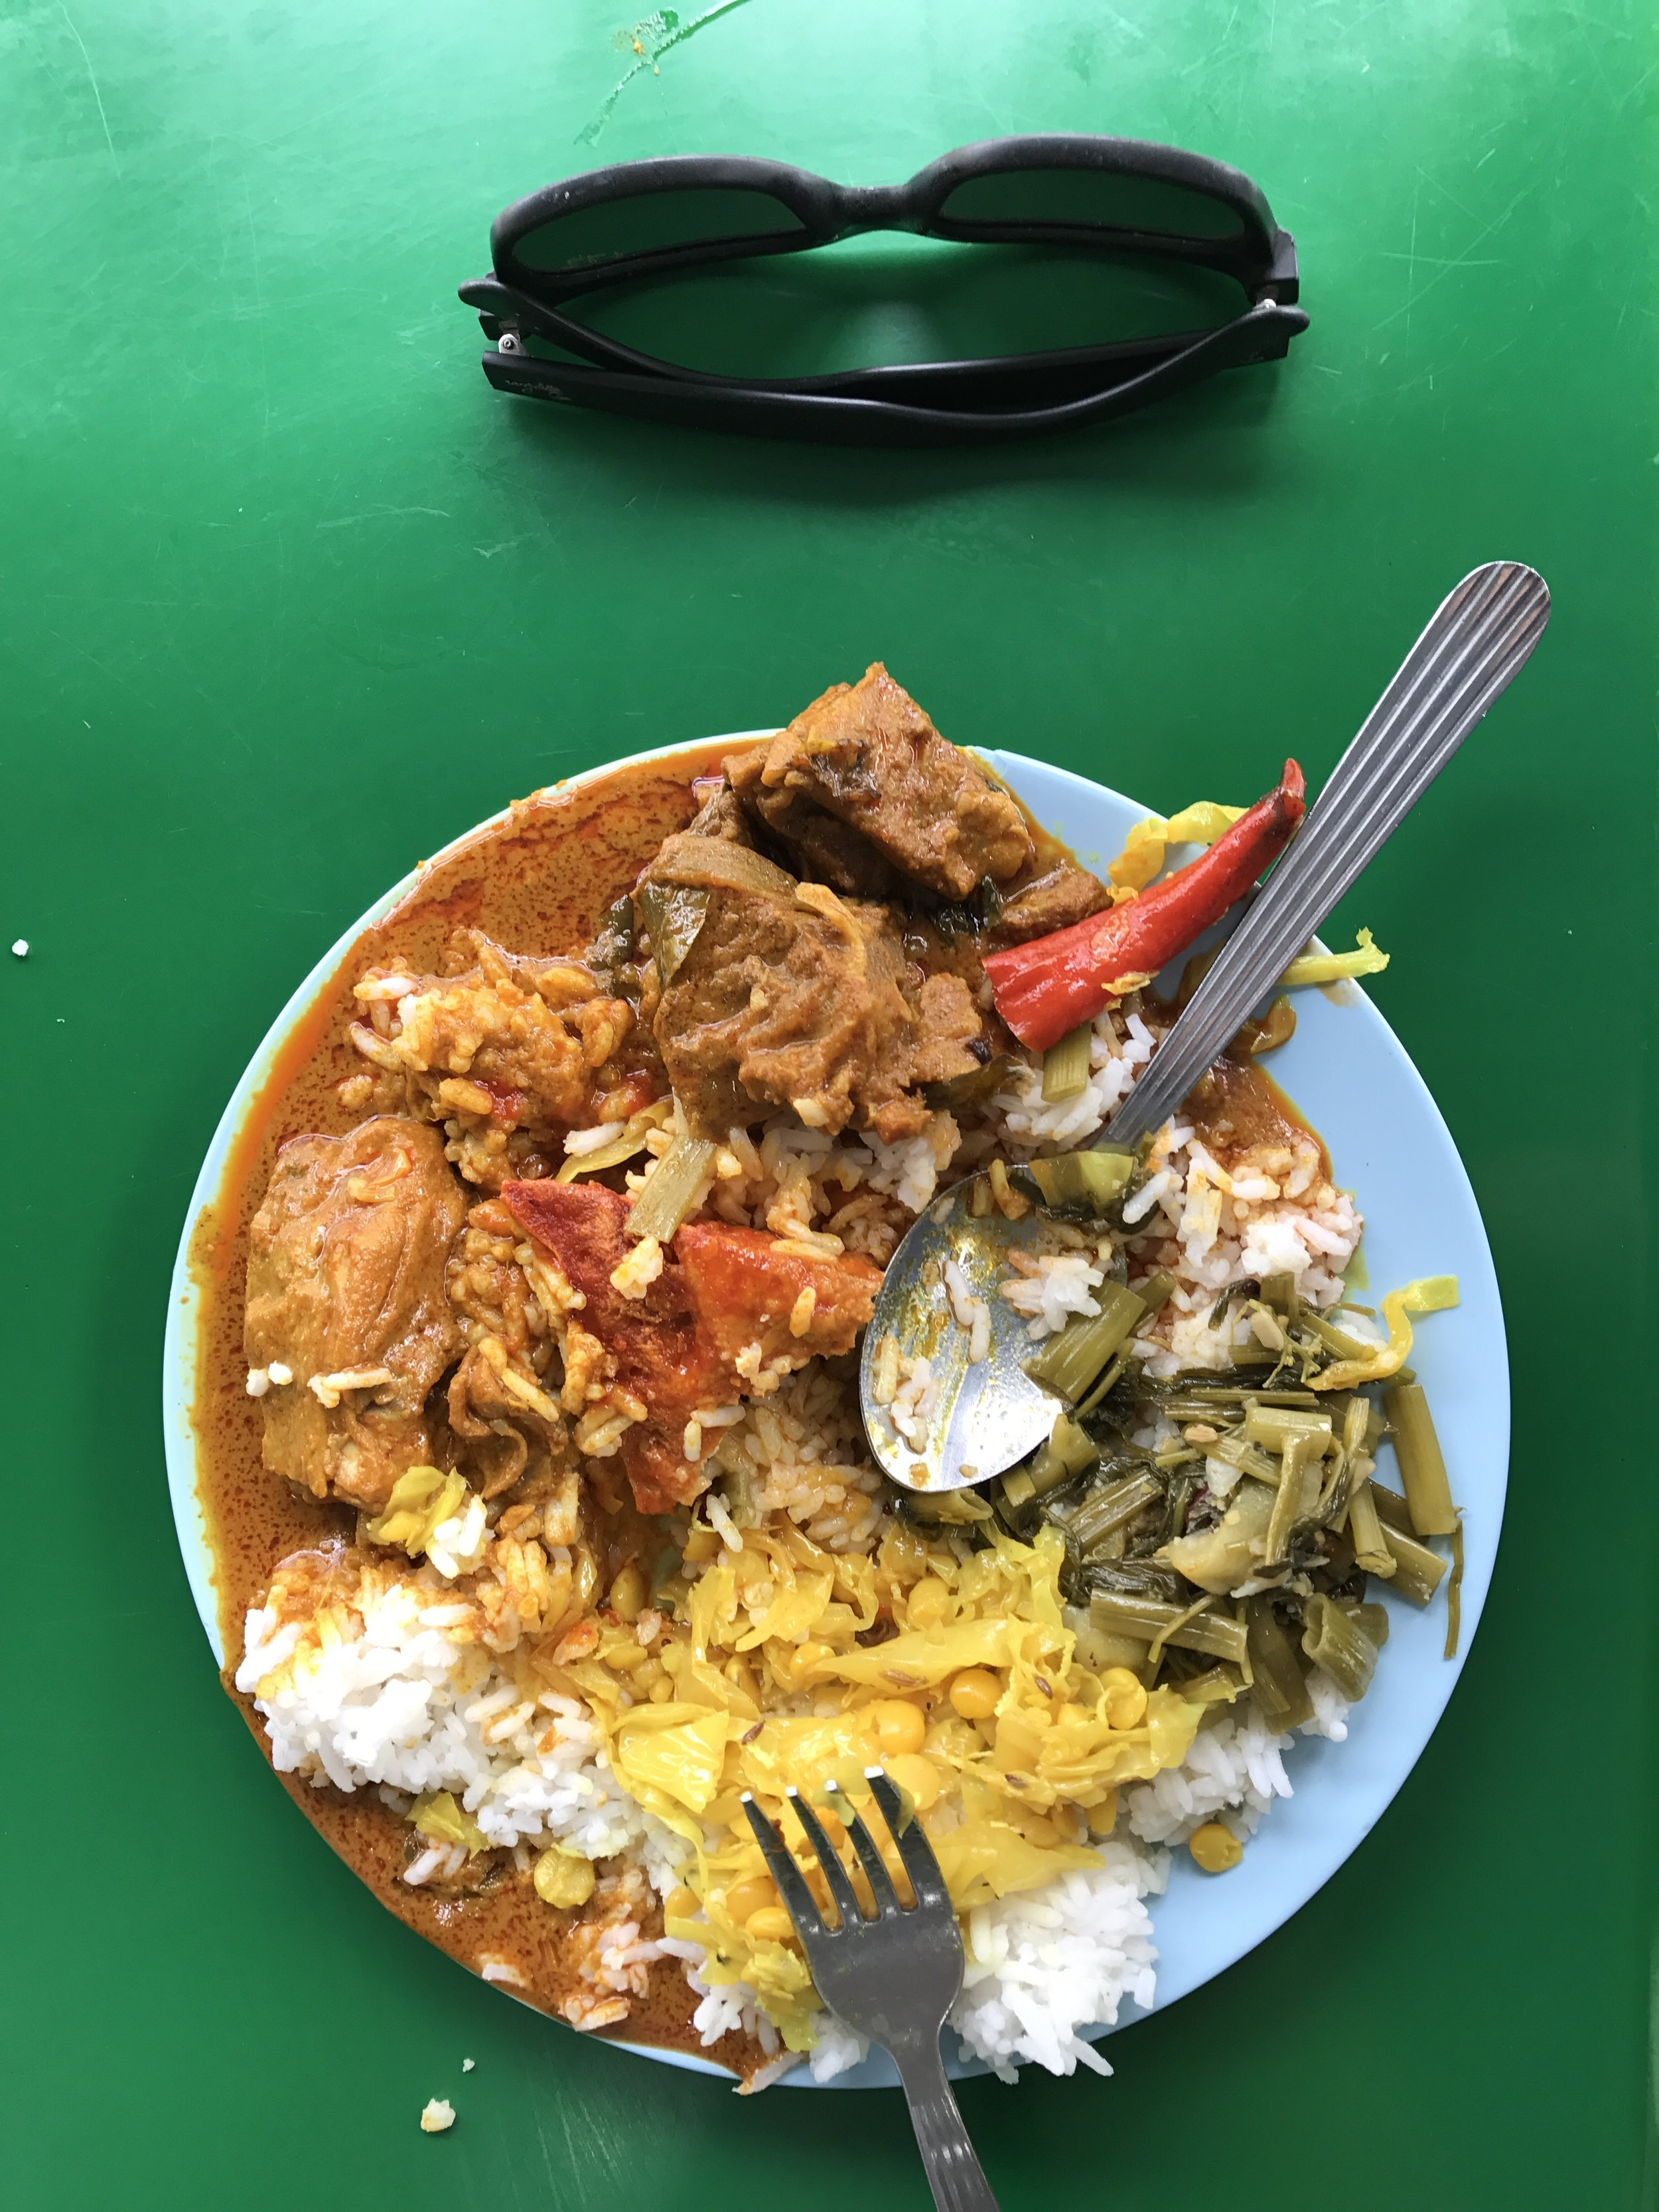 Typical lunches - buffets where we load up on rice, veggies, and meat curries. $1-2.